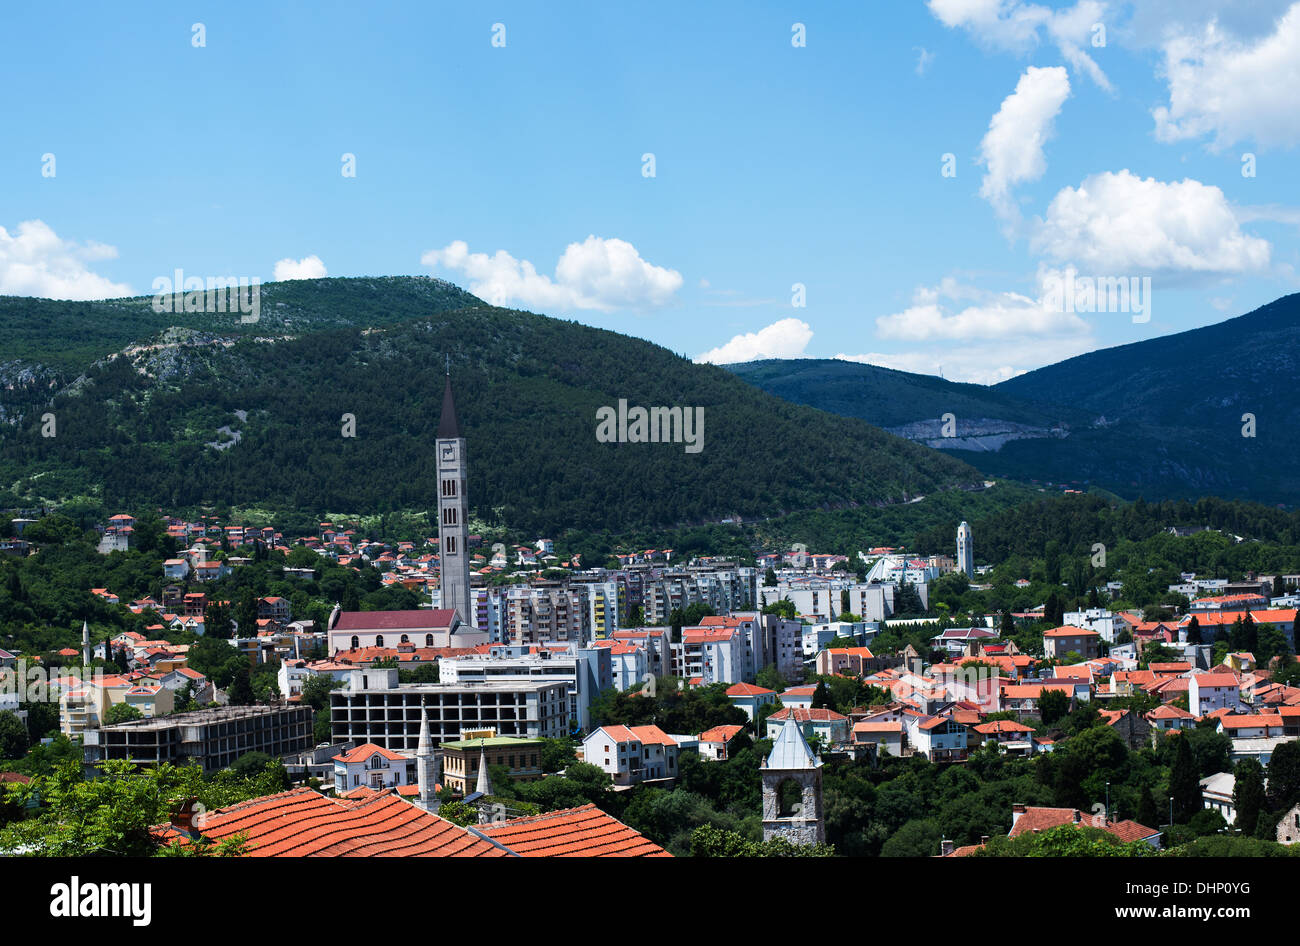 A view of Mostar. Bosnian side in front and the Catholic Croat side in the back. - Stock Image